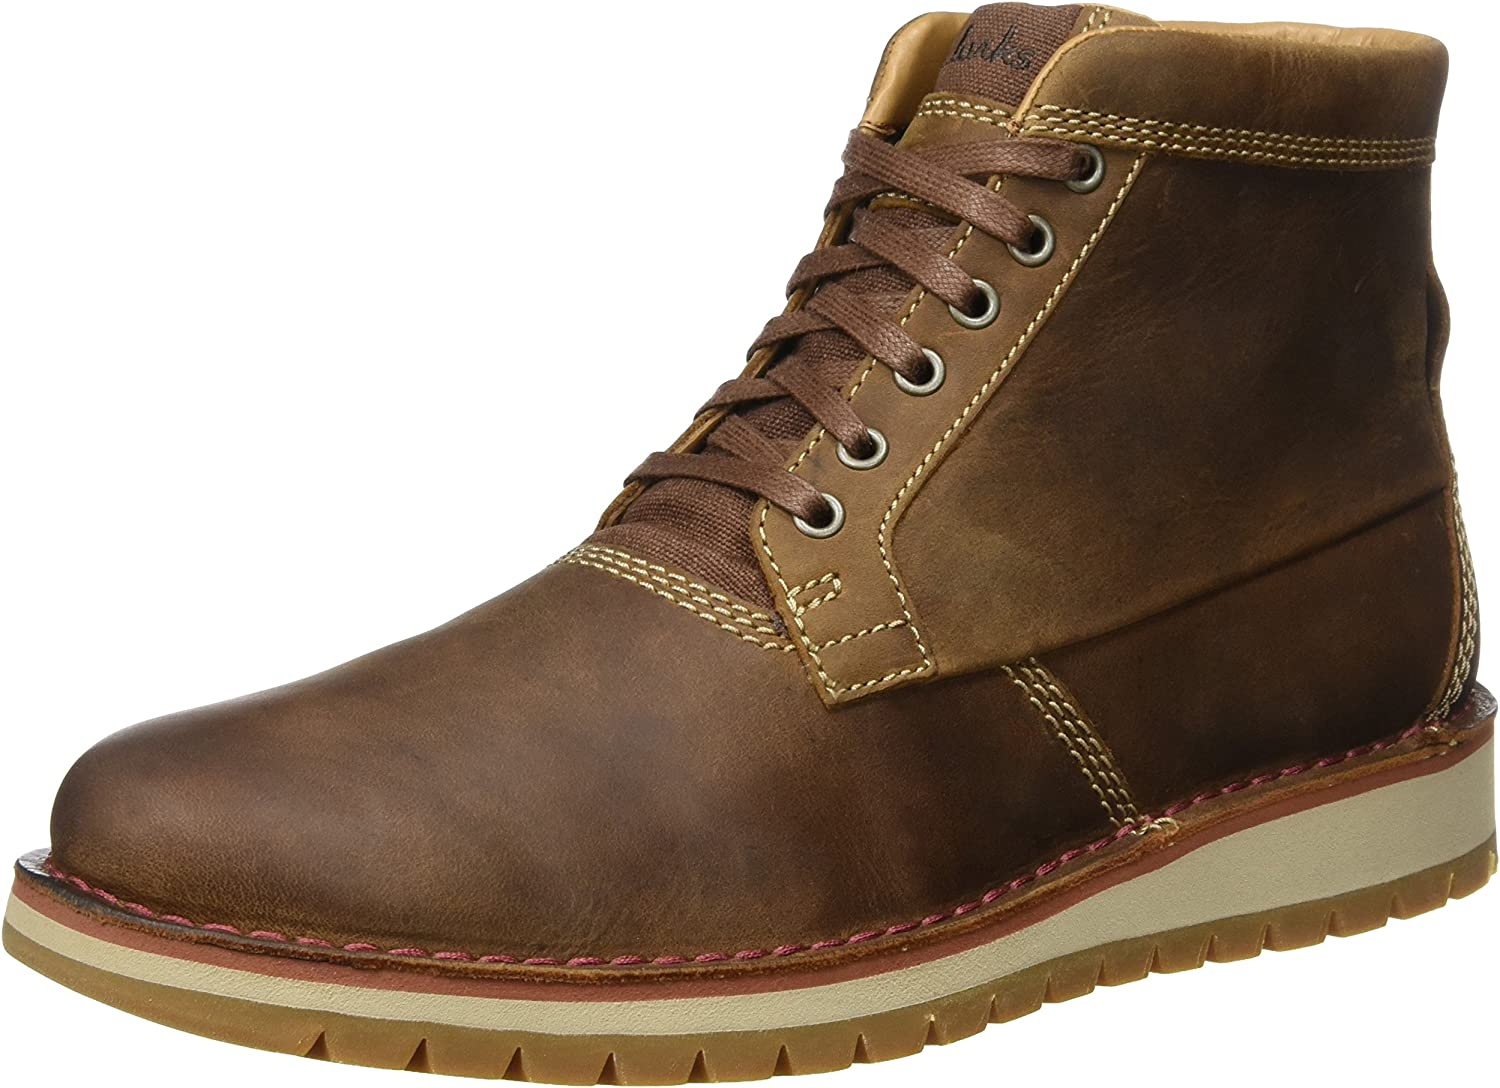 Clarks Men's Boots shoes 26127860 VARBY TOP Brown